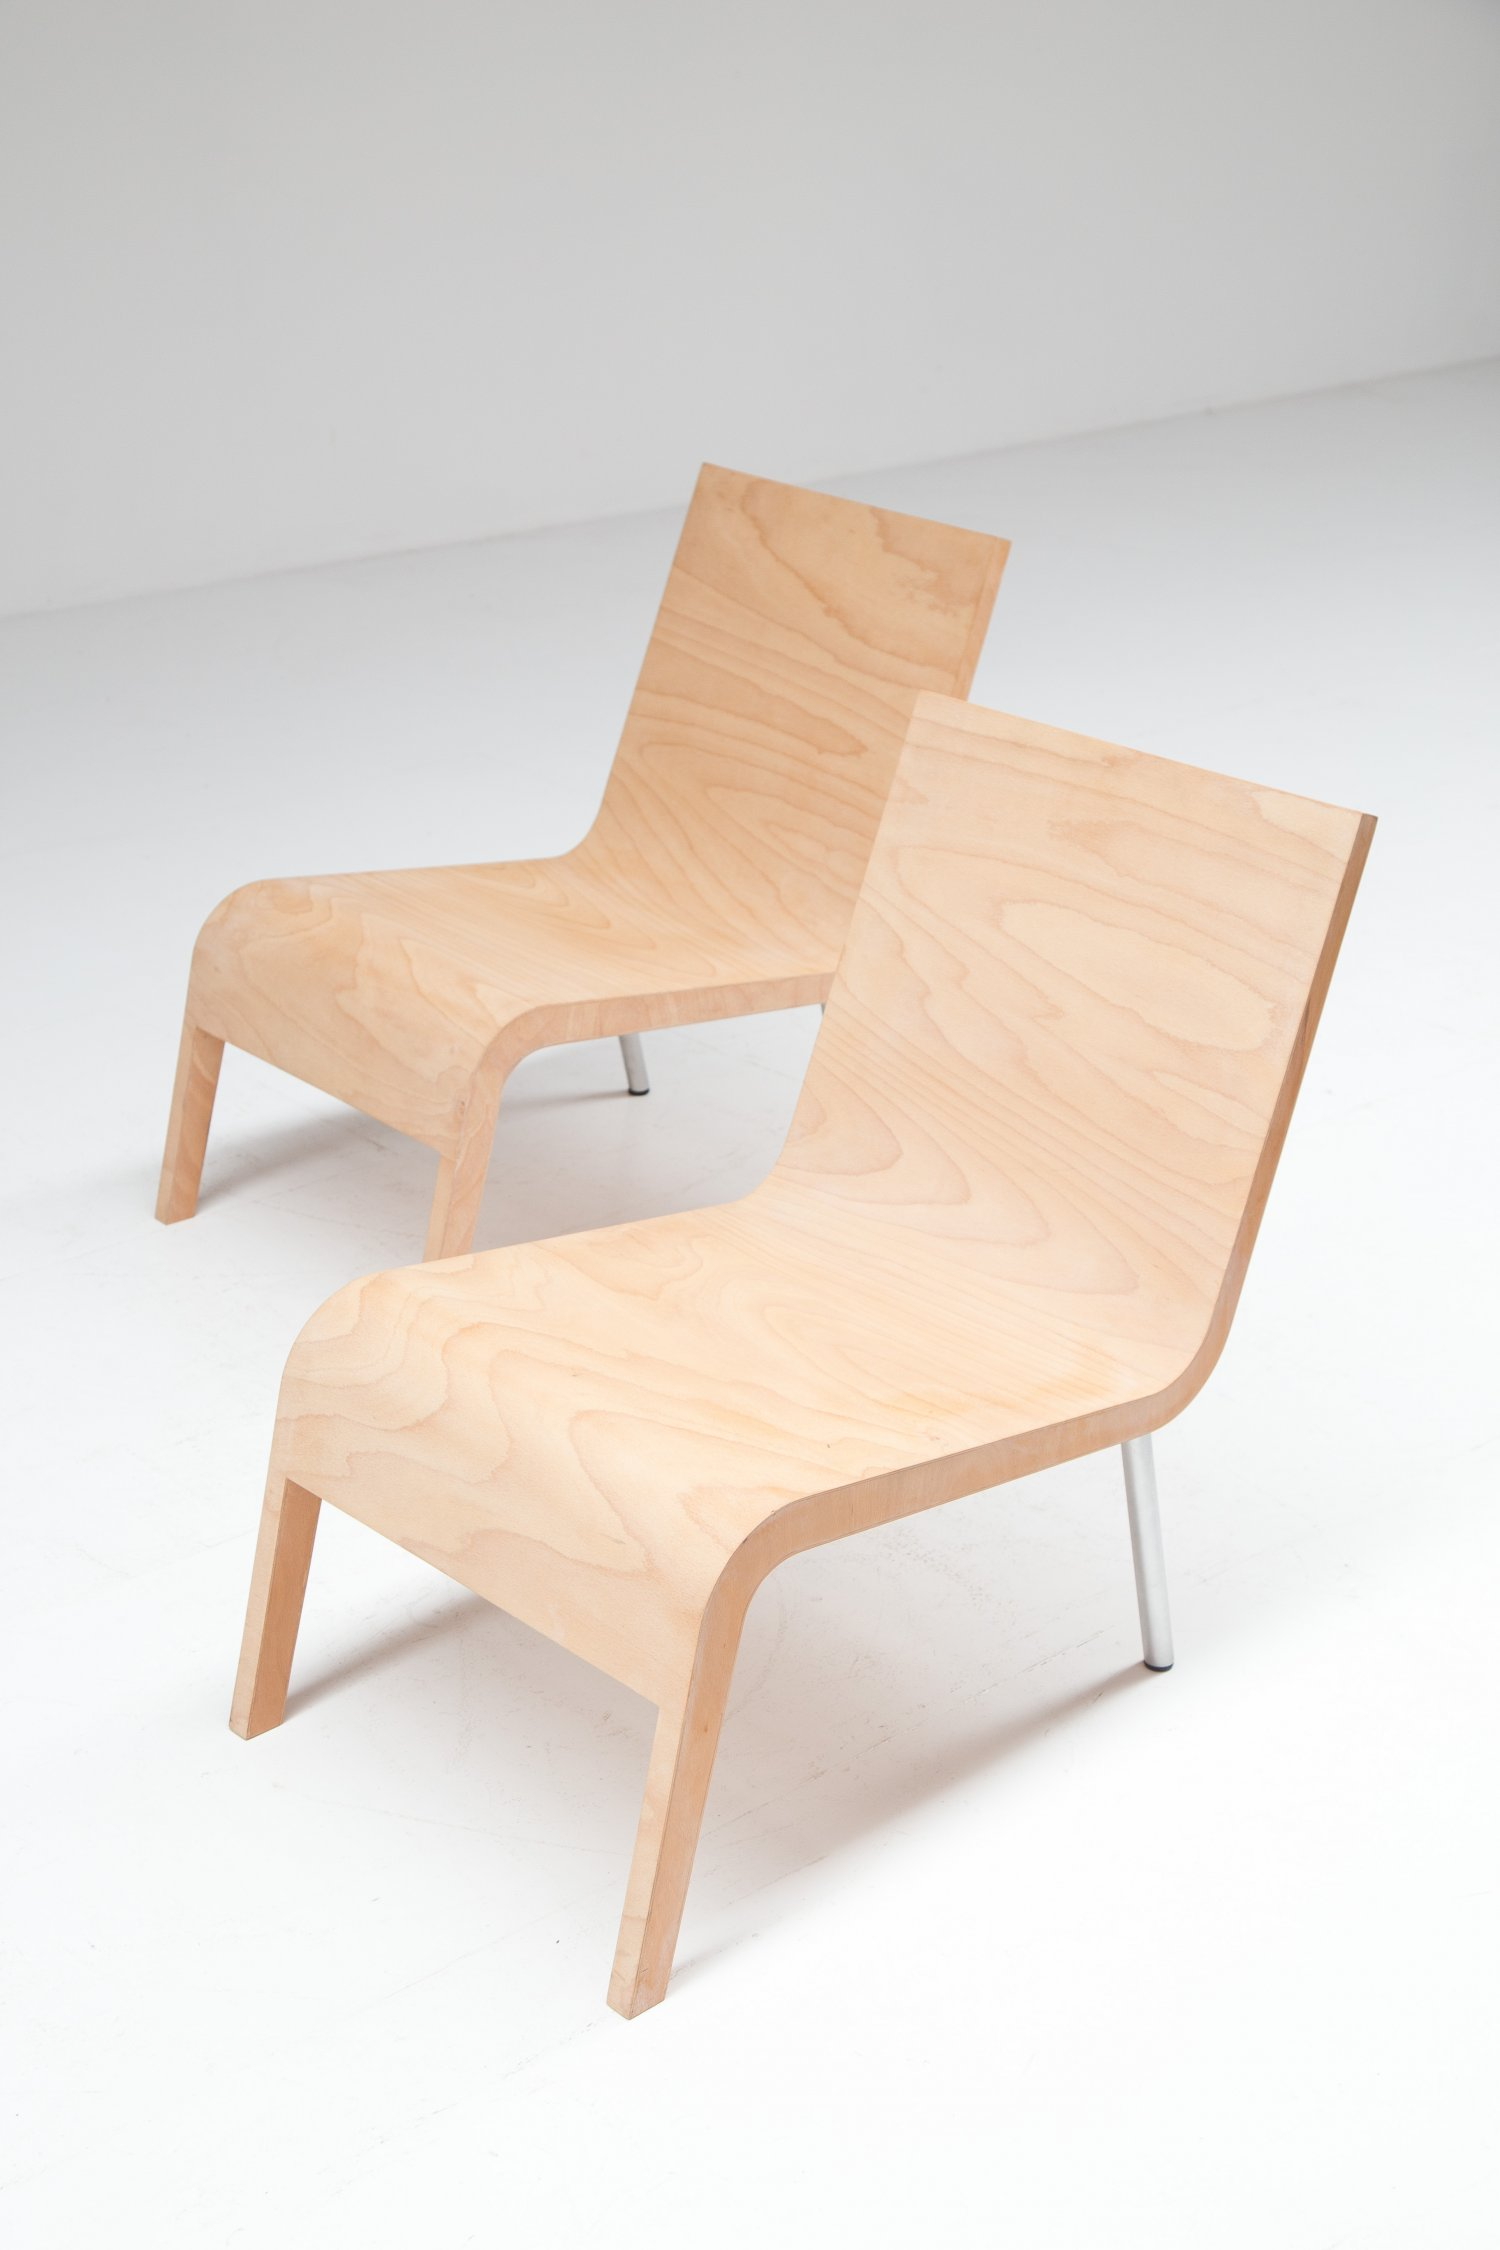 2 Maarten Van Severen Low Chairs